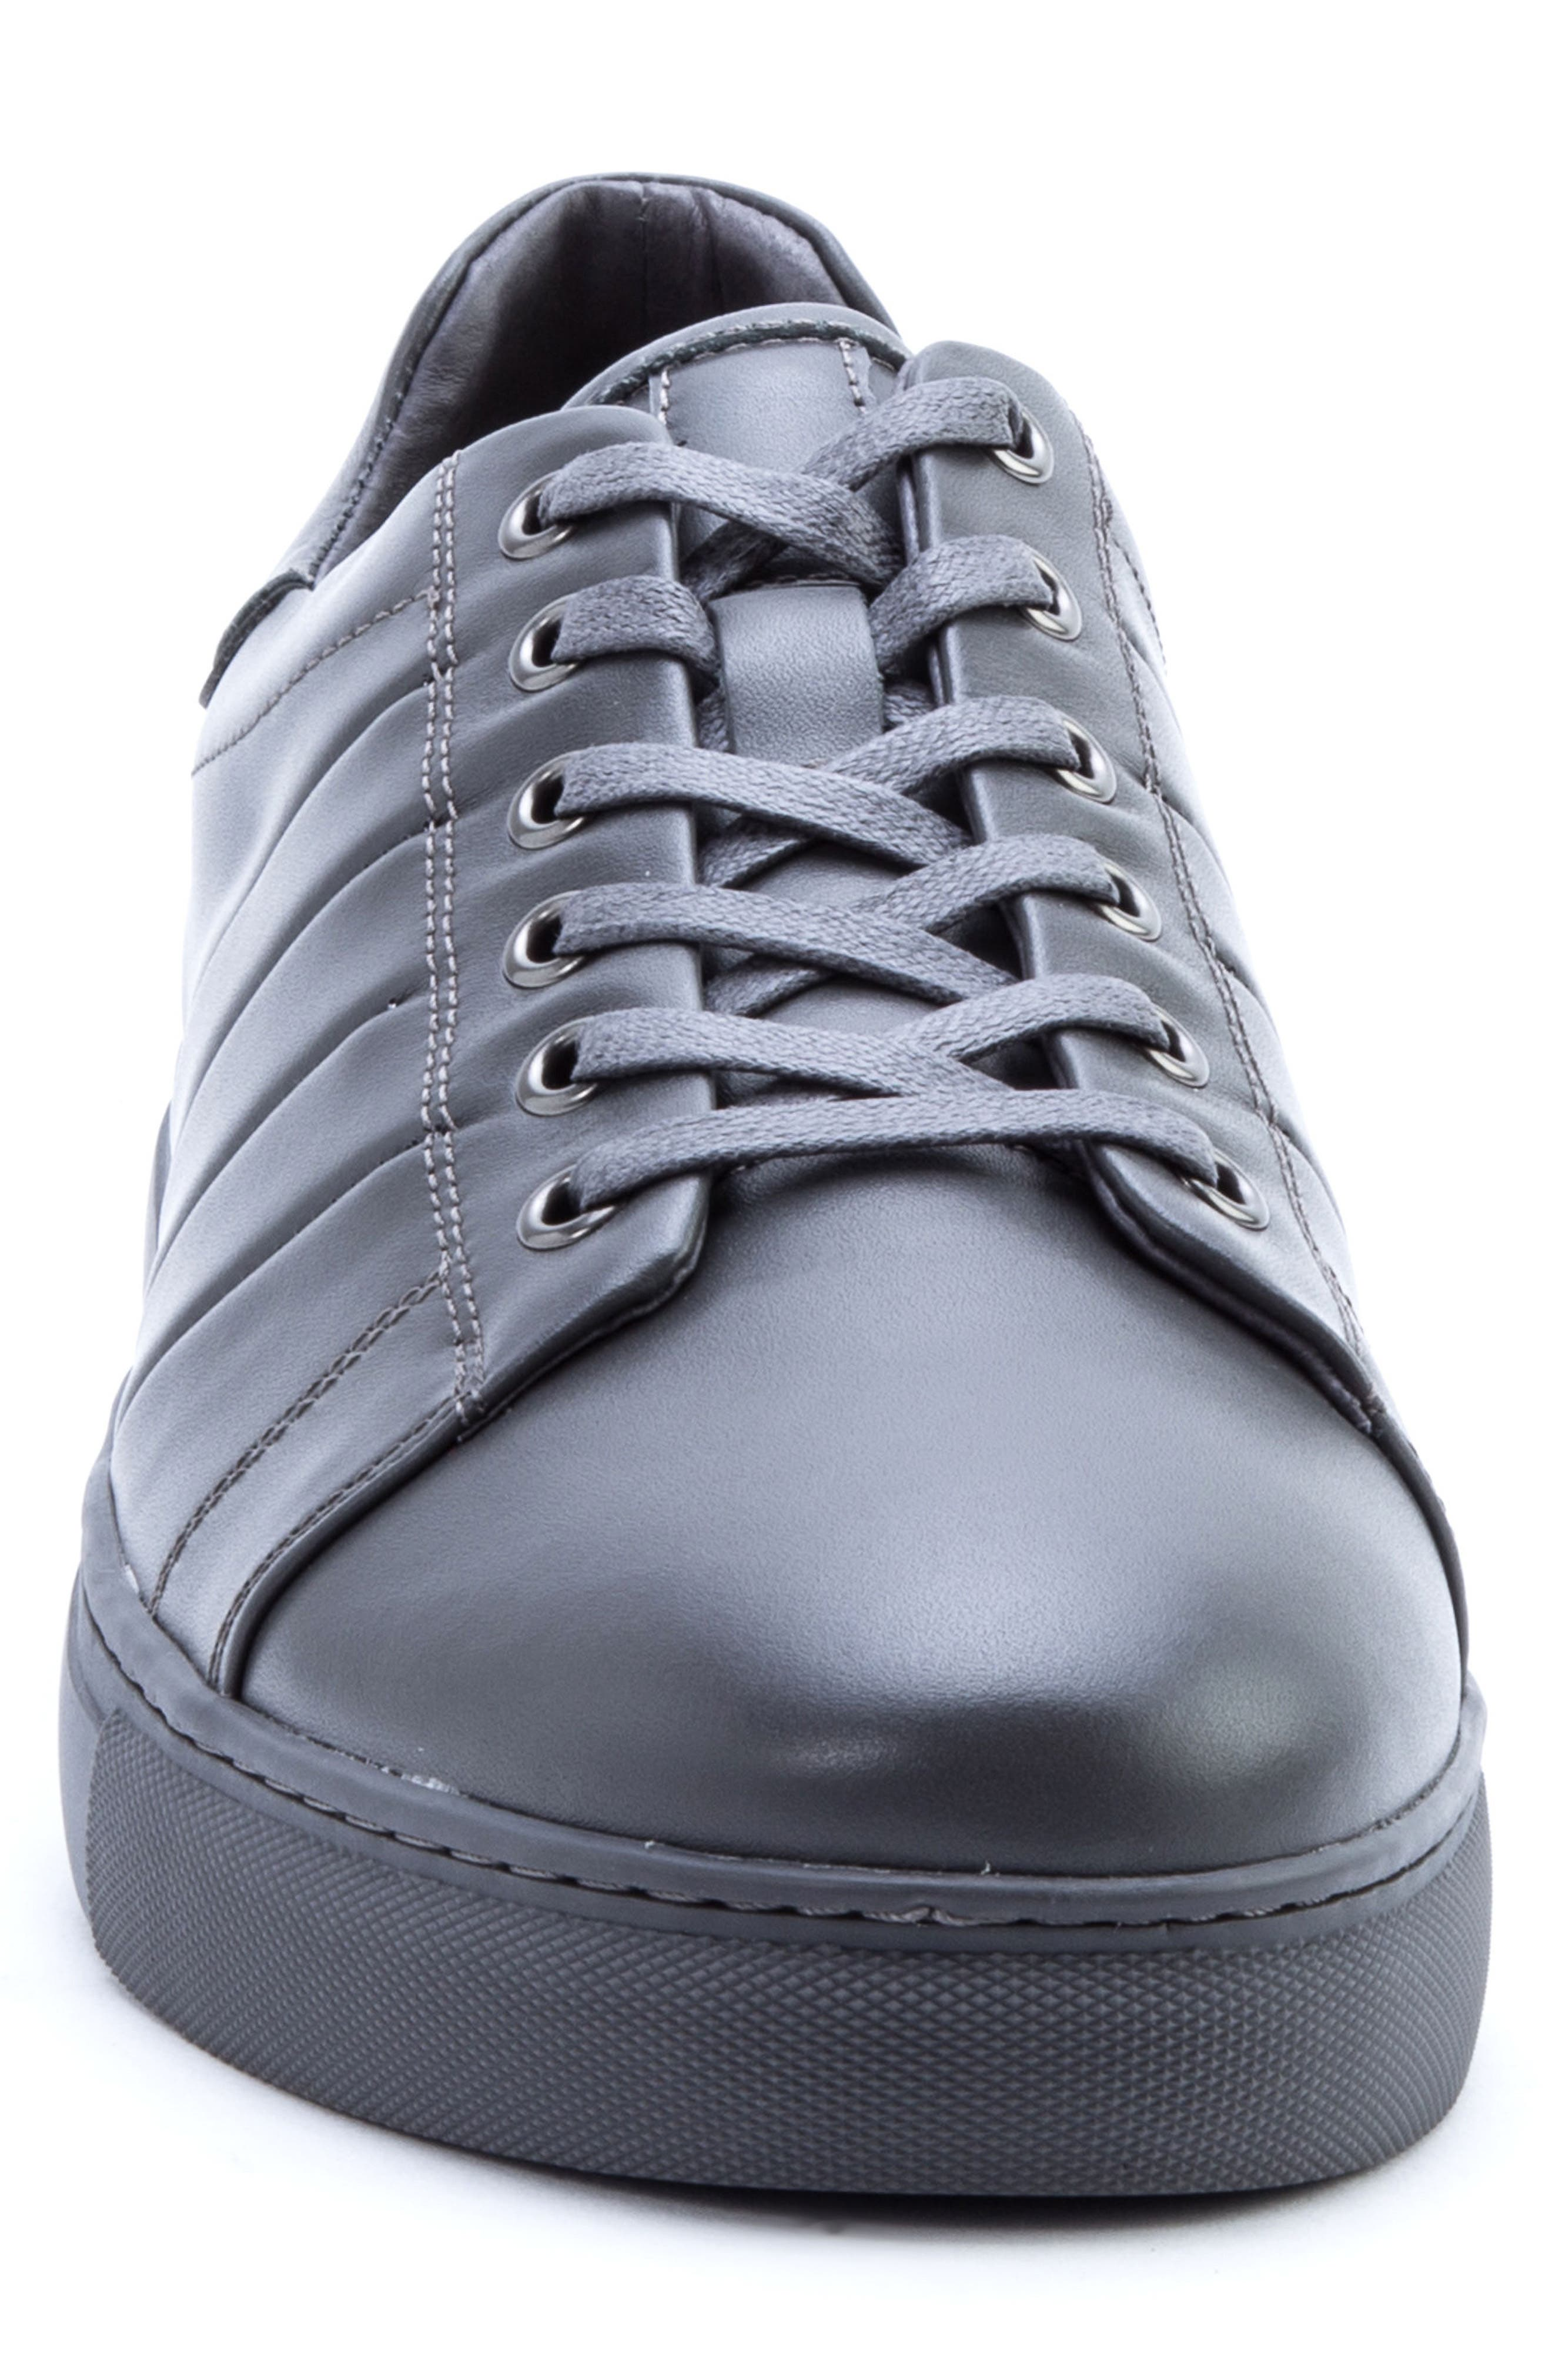 Mitchell Sneaker,                             Alternate thumbnail 4, color,                             GREY LEATHER